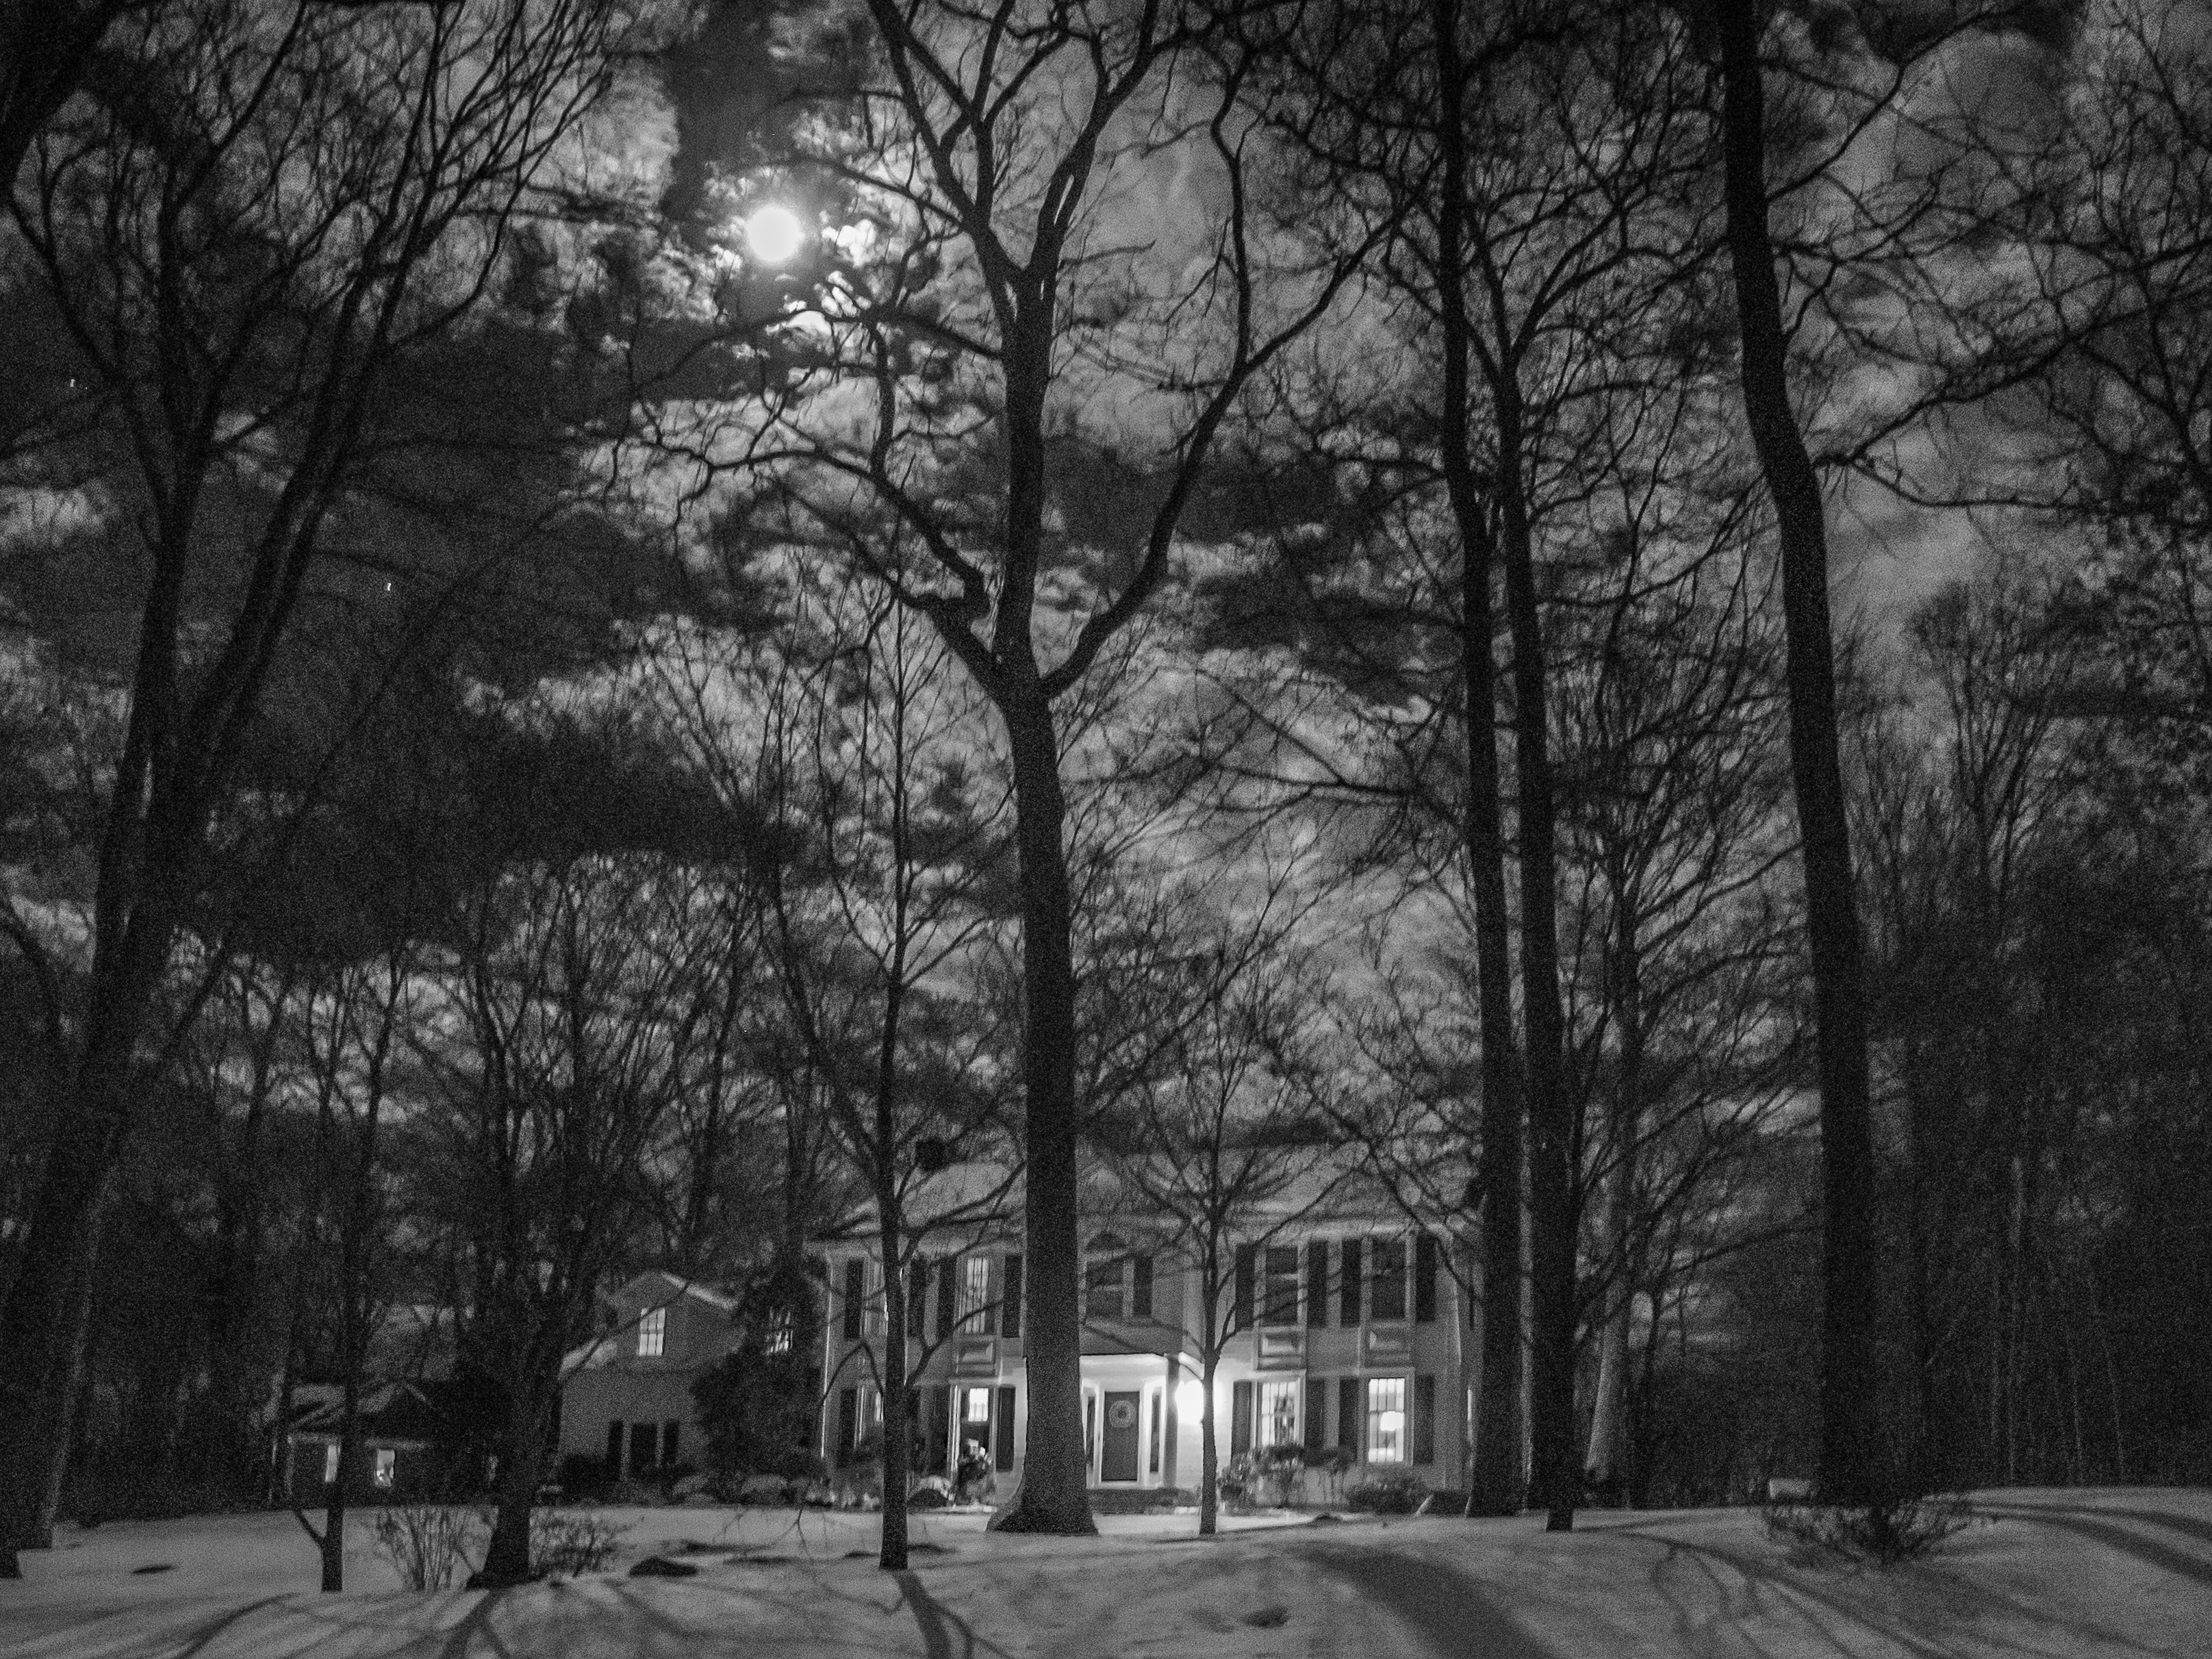 moon over snowy woods with house